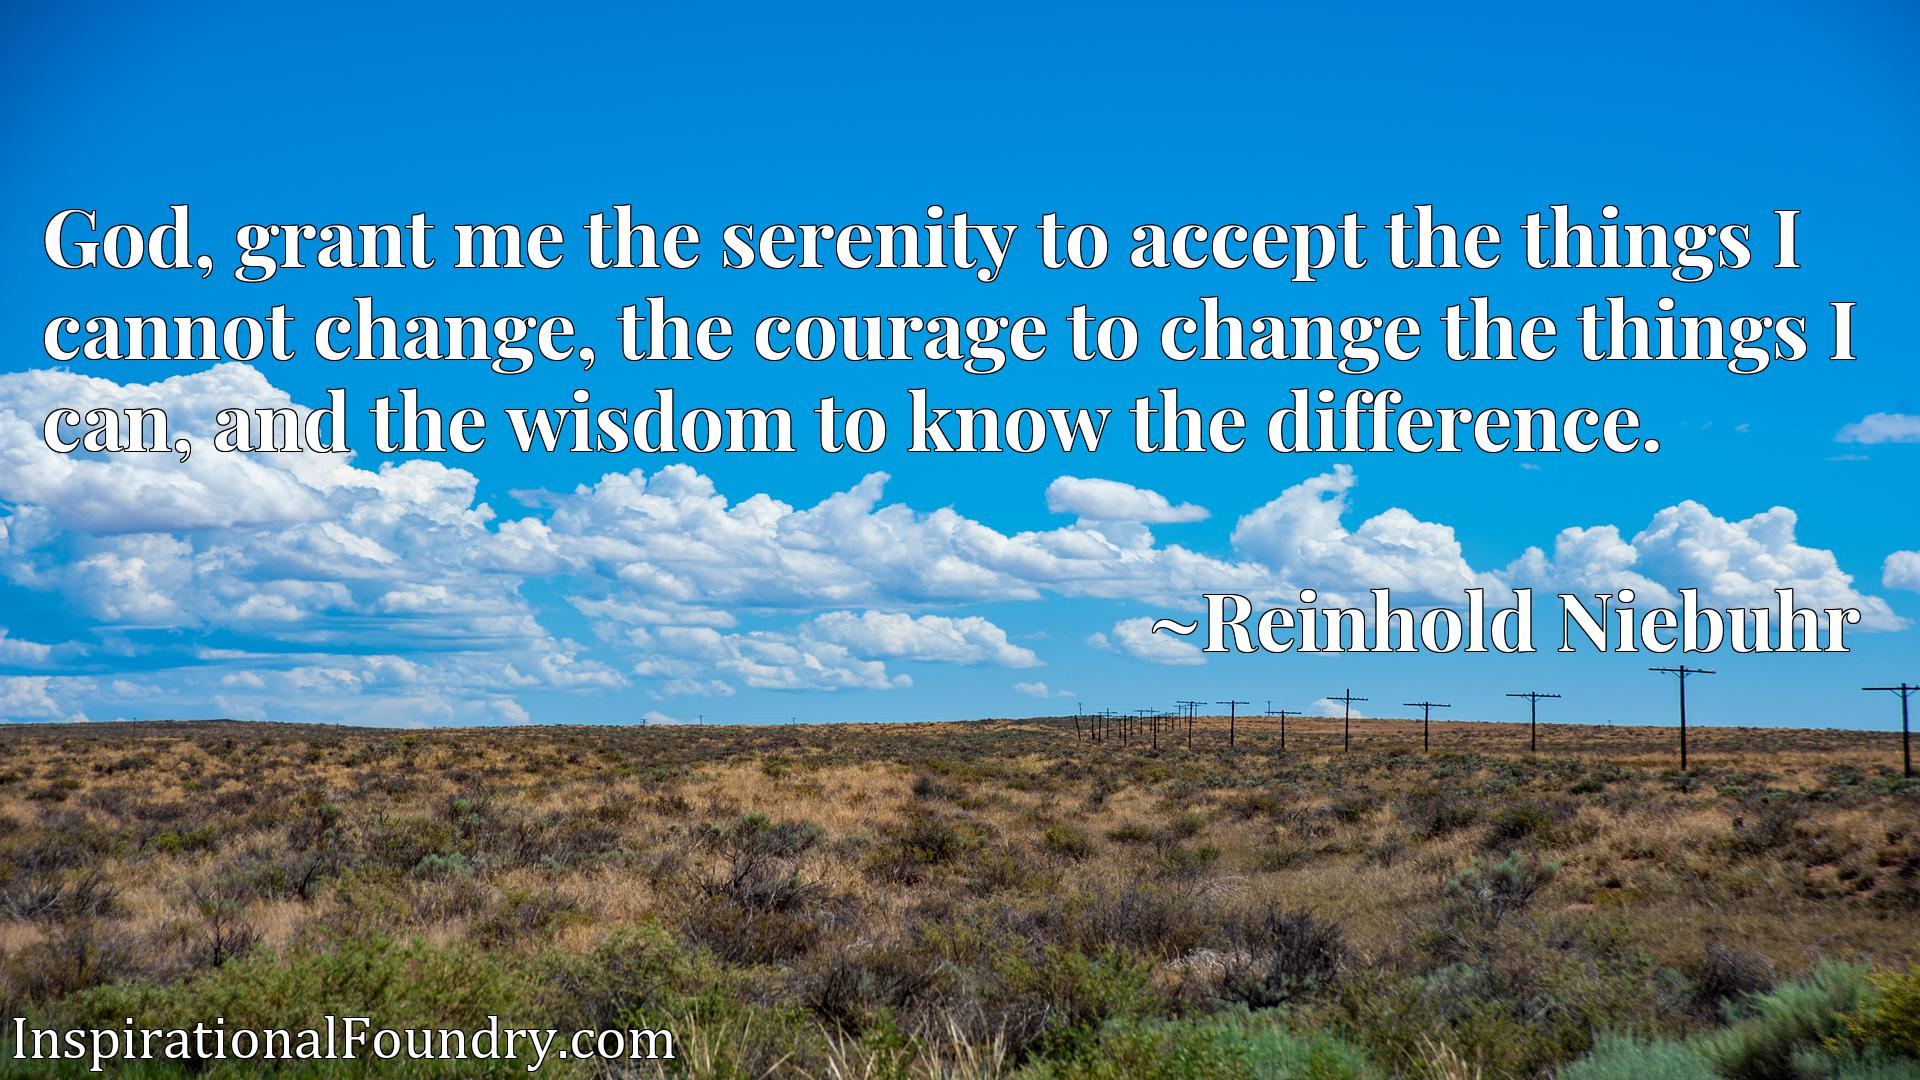 Quote Picture :God, grant me the serenity to accept the things I cannot change, the courage to change the things I can, and the wisdom to know the difference.